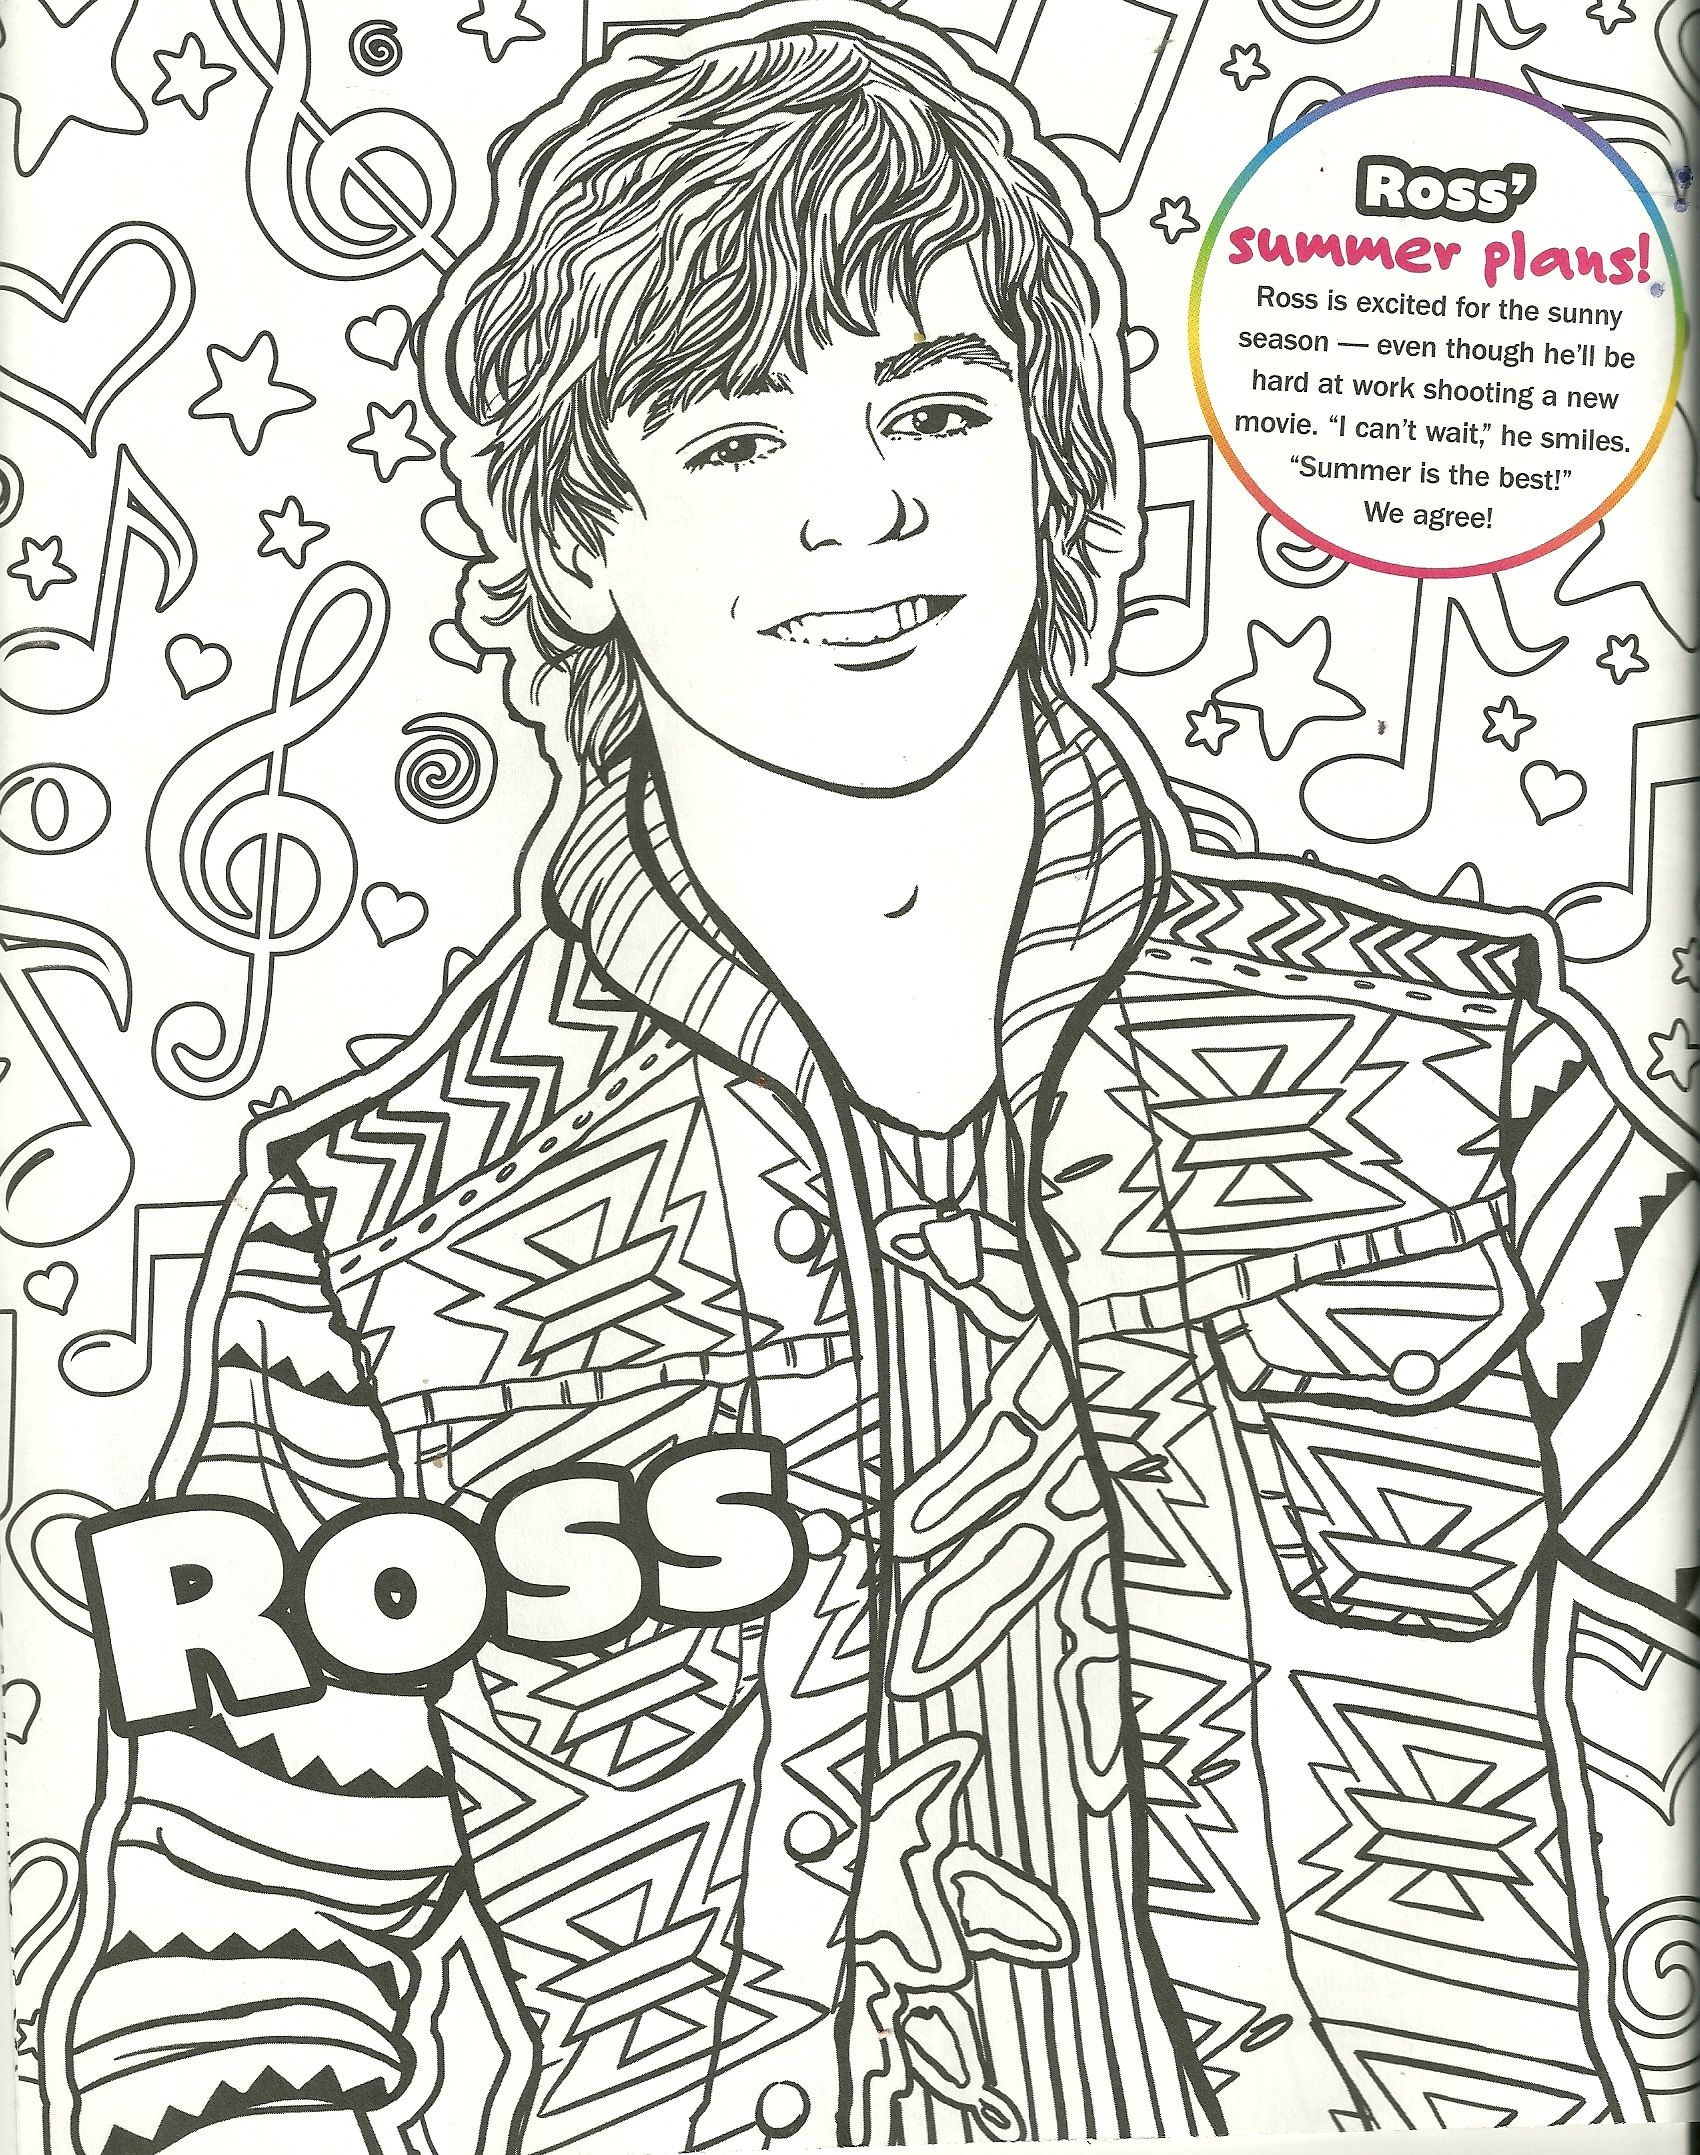 Ross linch free coloring pages for Dove cameron coloring pages